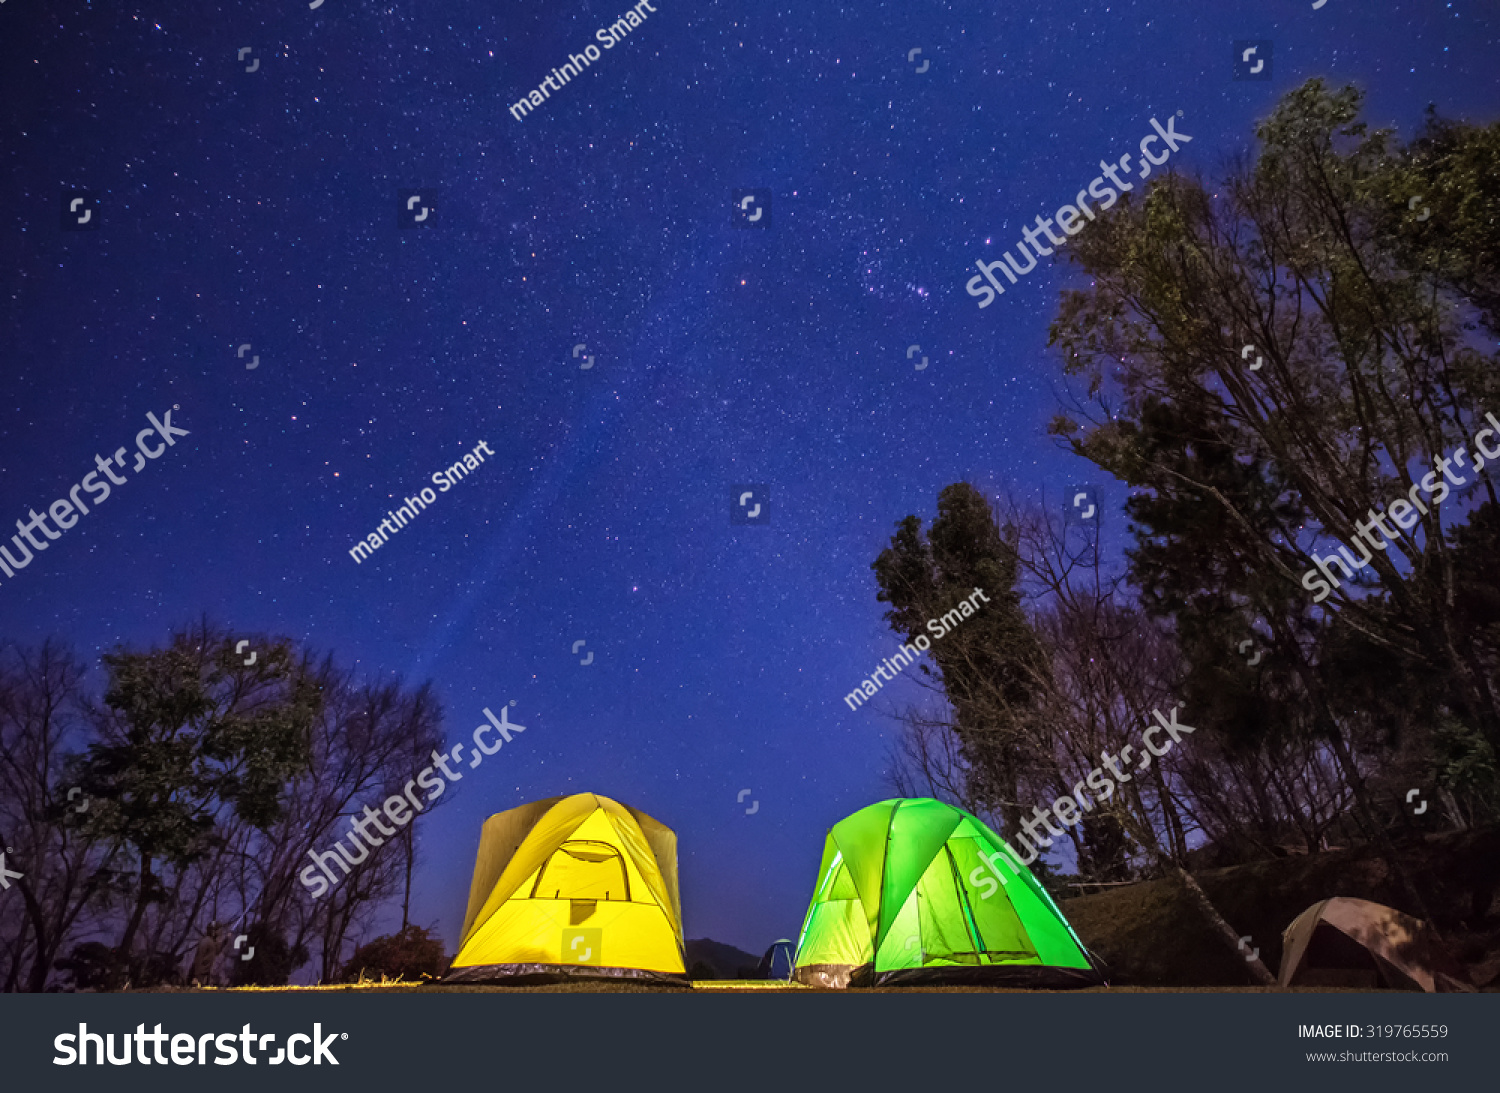 Camping In Forest At Night With Star